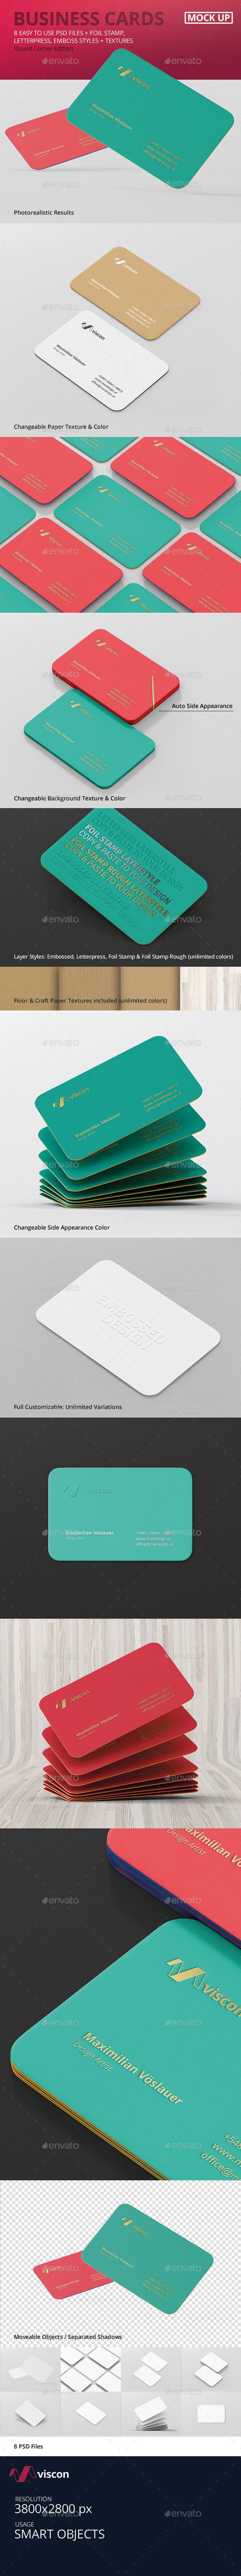 Business card mockup round corners pinterest mockup business business cards mock ups round corners business cards print reheart Gallery